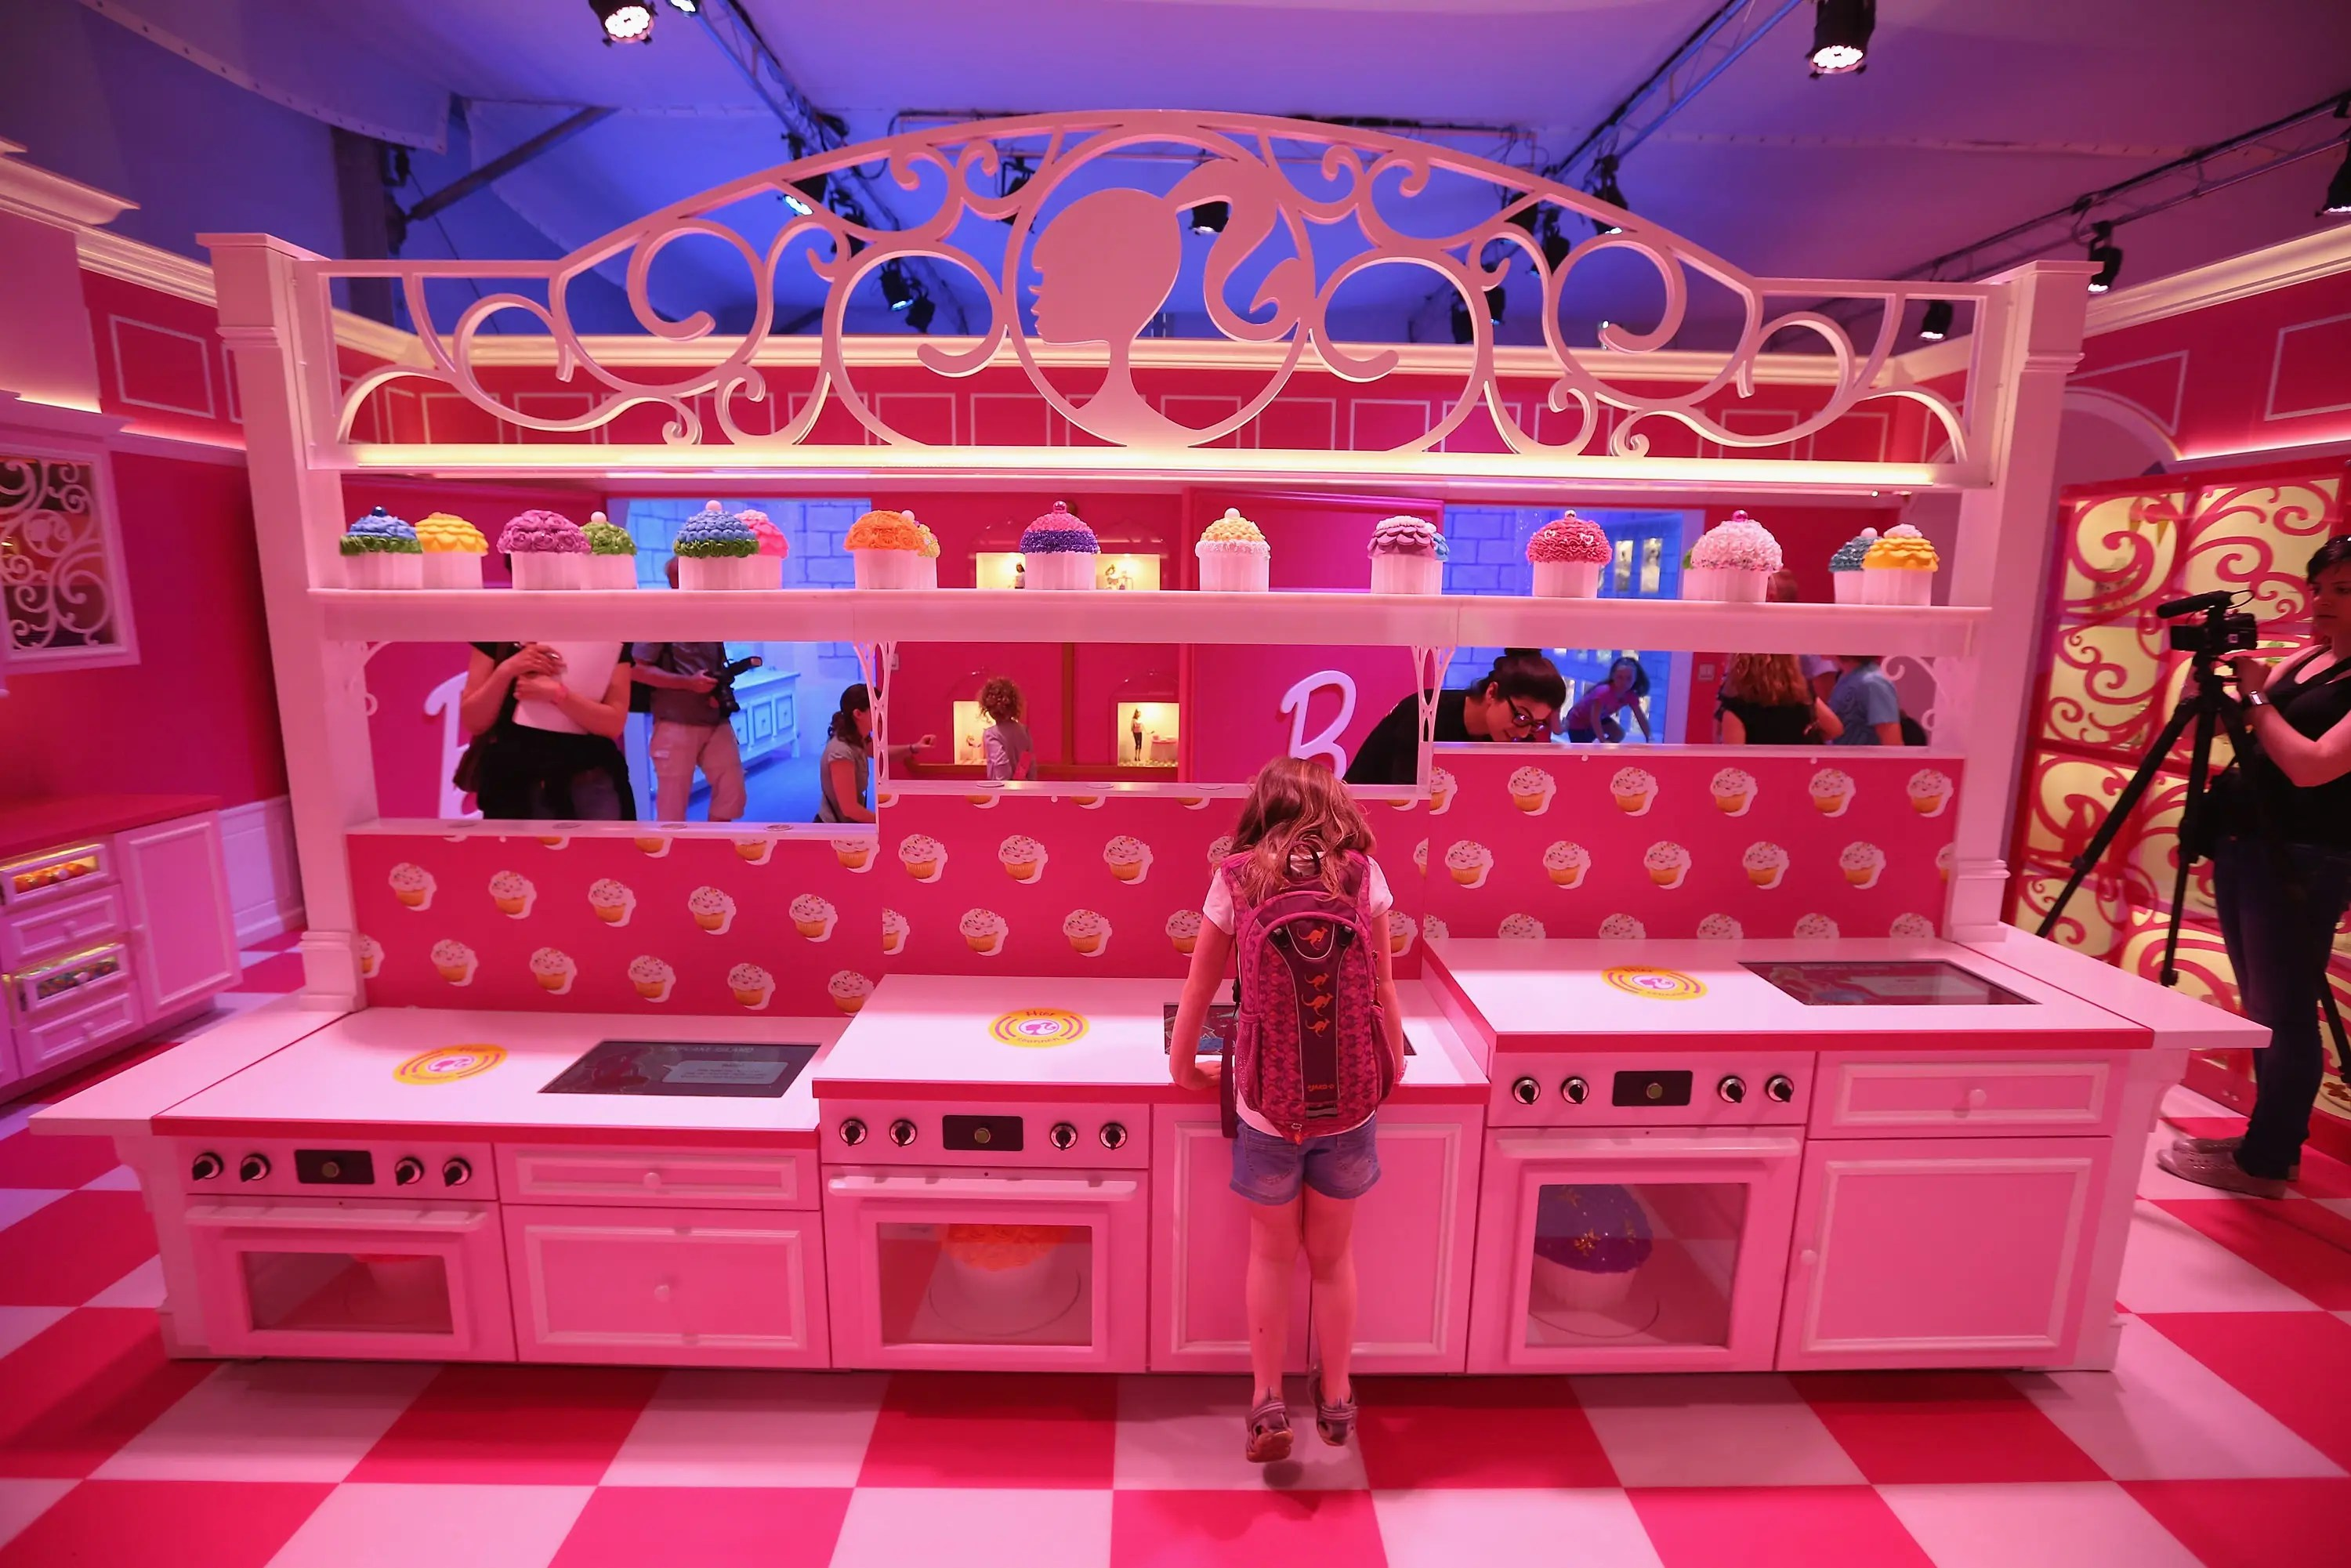 Photos Of The Ridiculous Life Sized 'Barbie Dreamhouse' In Berlin